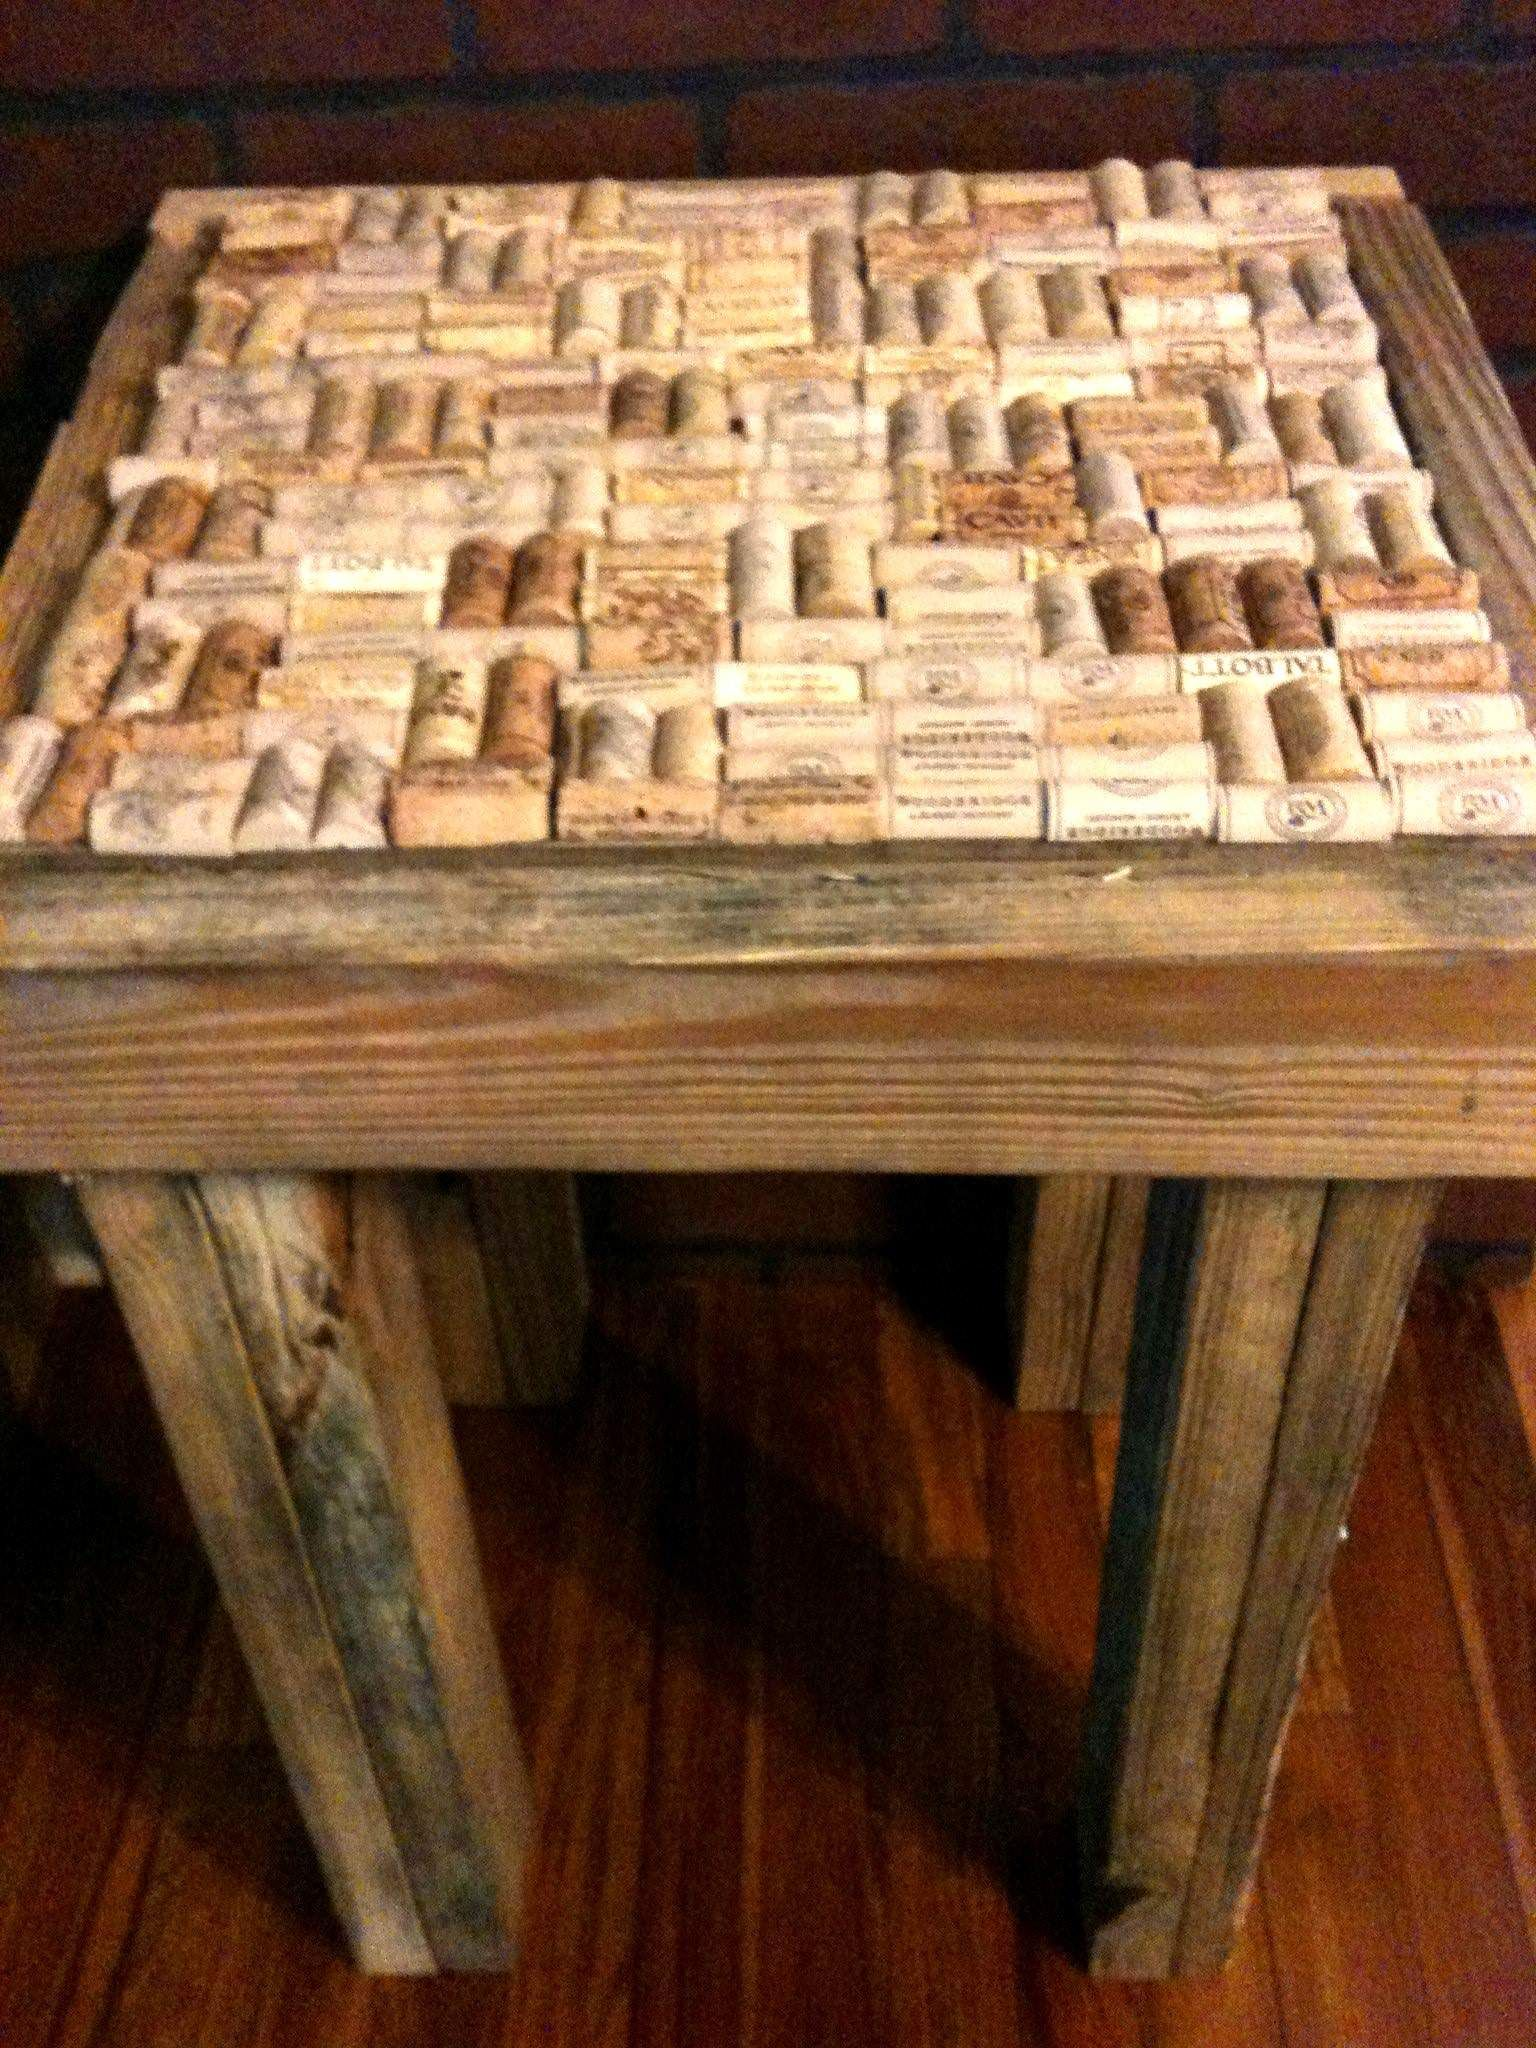 Wooden transport pallets have become increasingly popular for diy - Pallet Wood Cork End Table